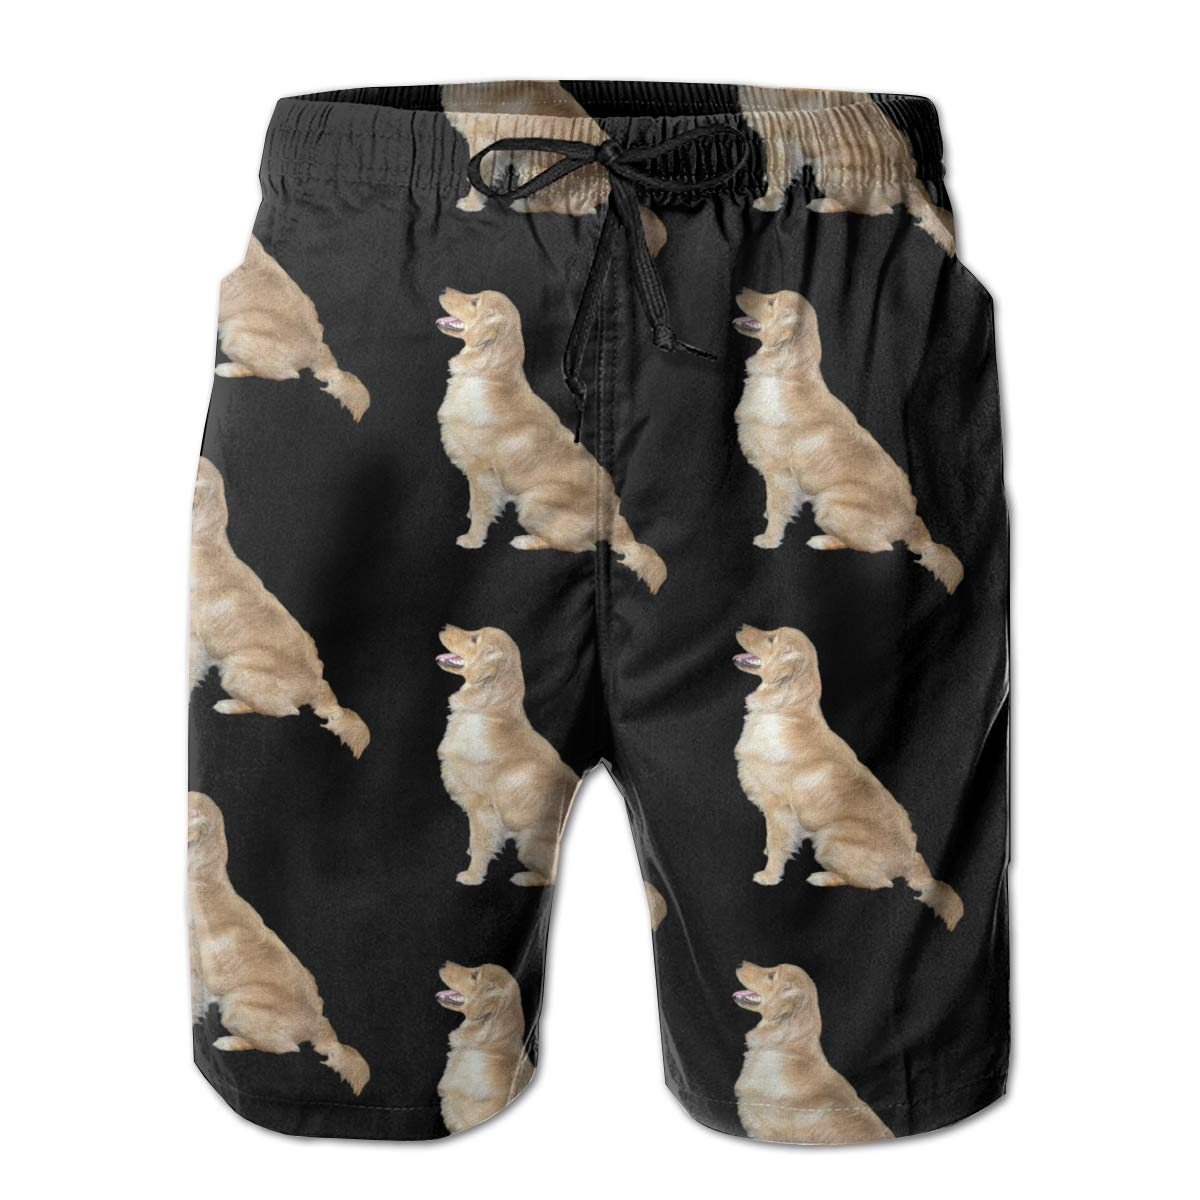 MIPU SHANGMAO Mens Golden Retriever Dogs Summer Beach Shorts Leisure Quick Dry Swimming Pants